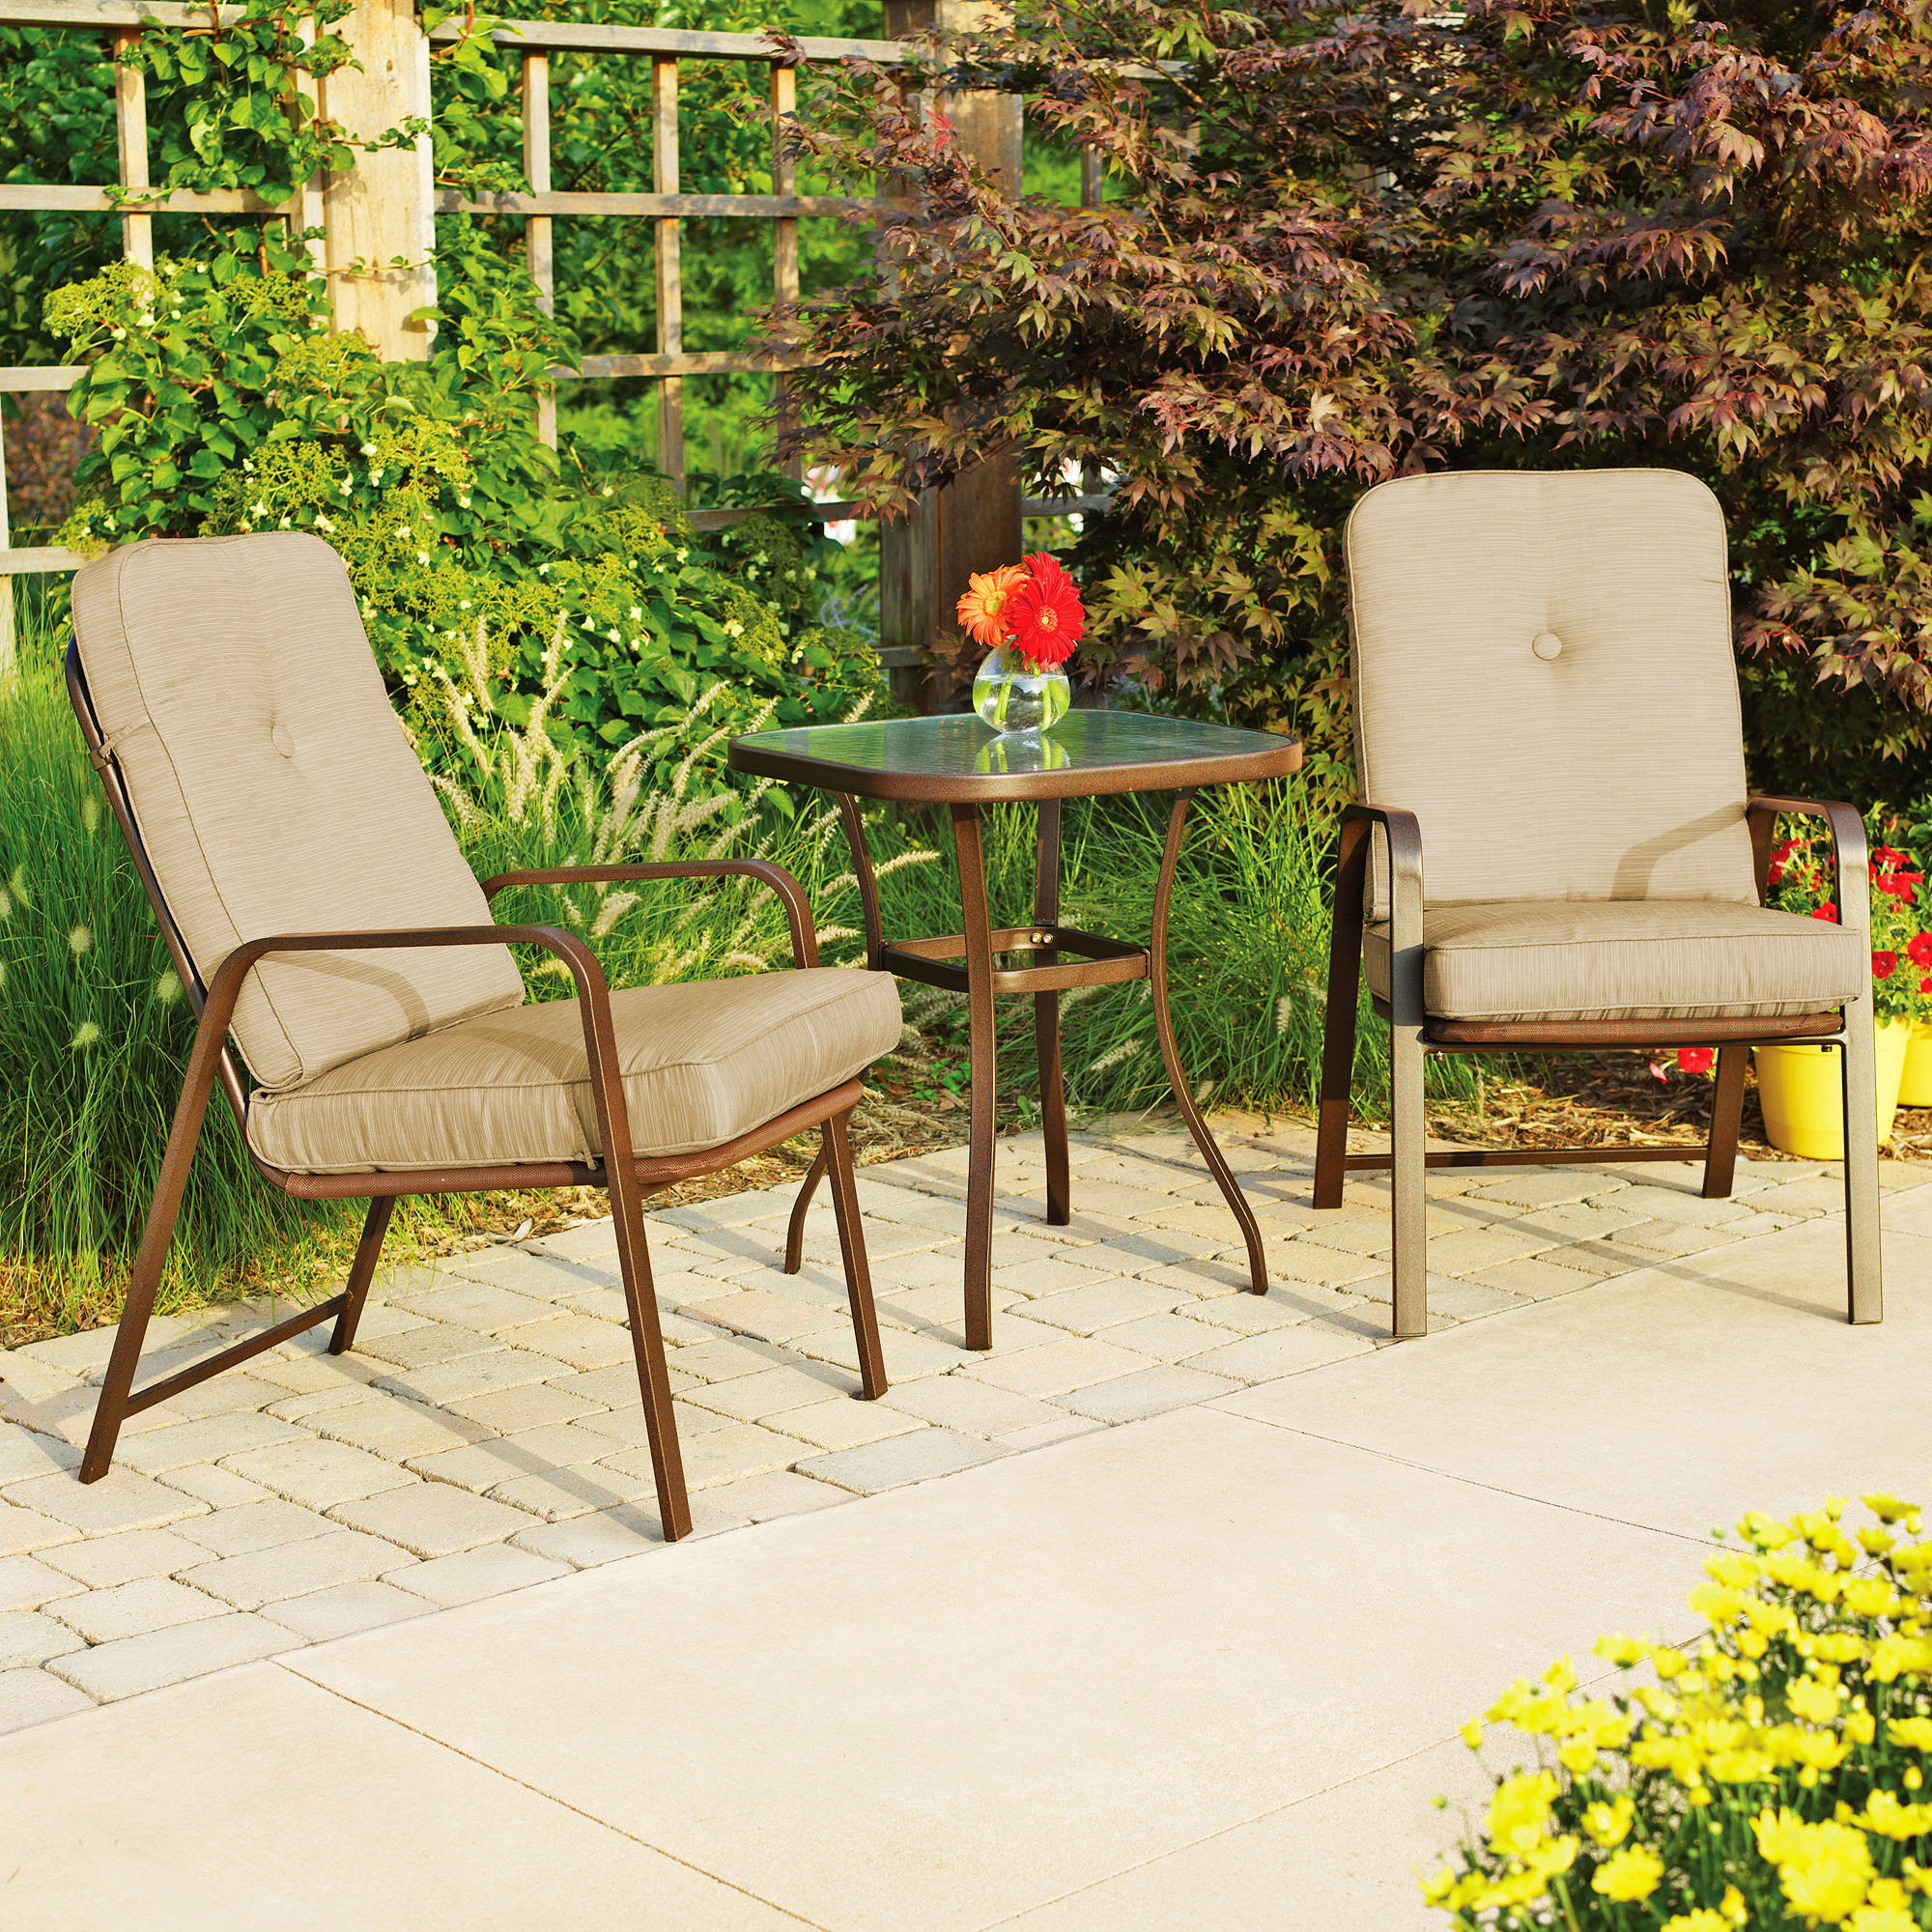 Mainstays Lawson Ridge 3 Piece Outdoor Bistro Set, Seats 2   Walmart.com